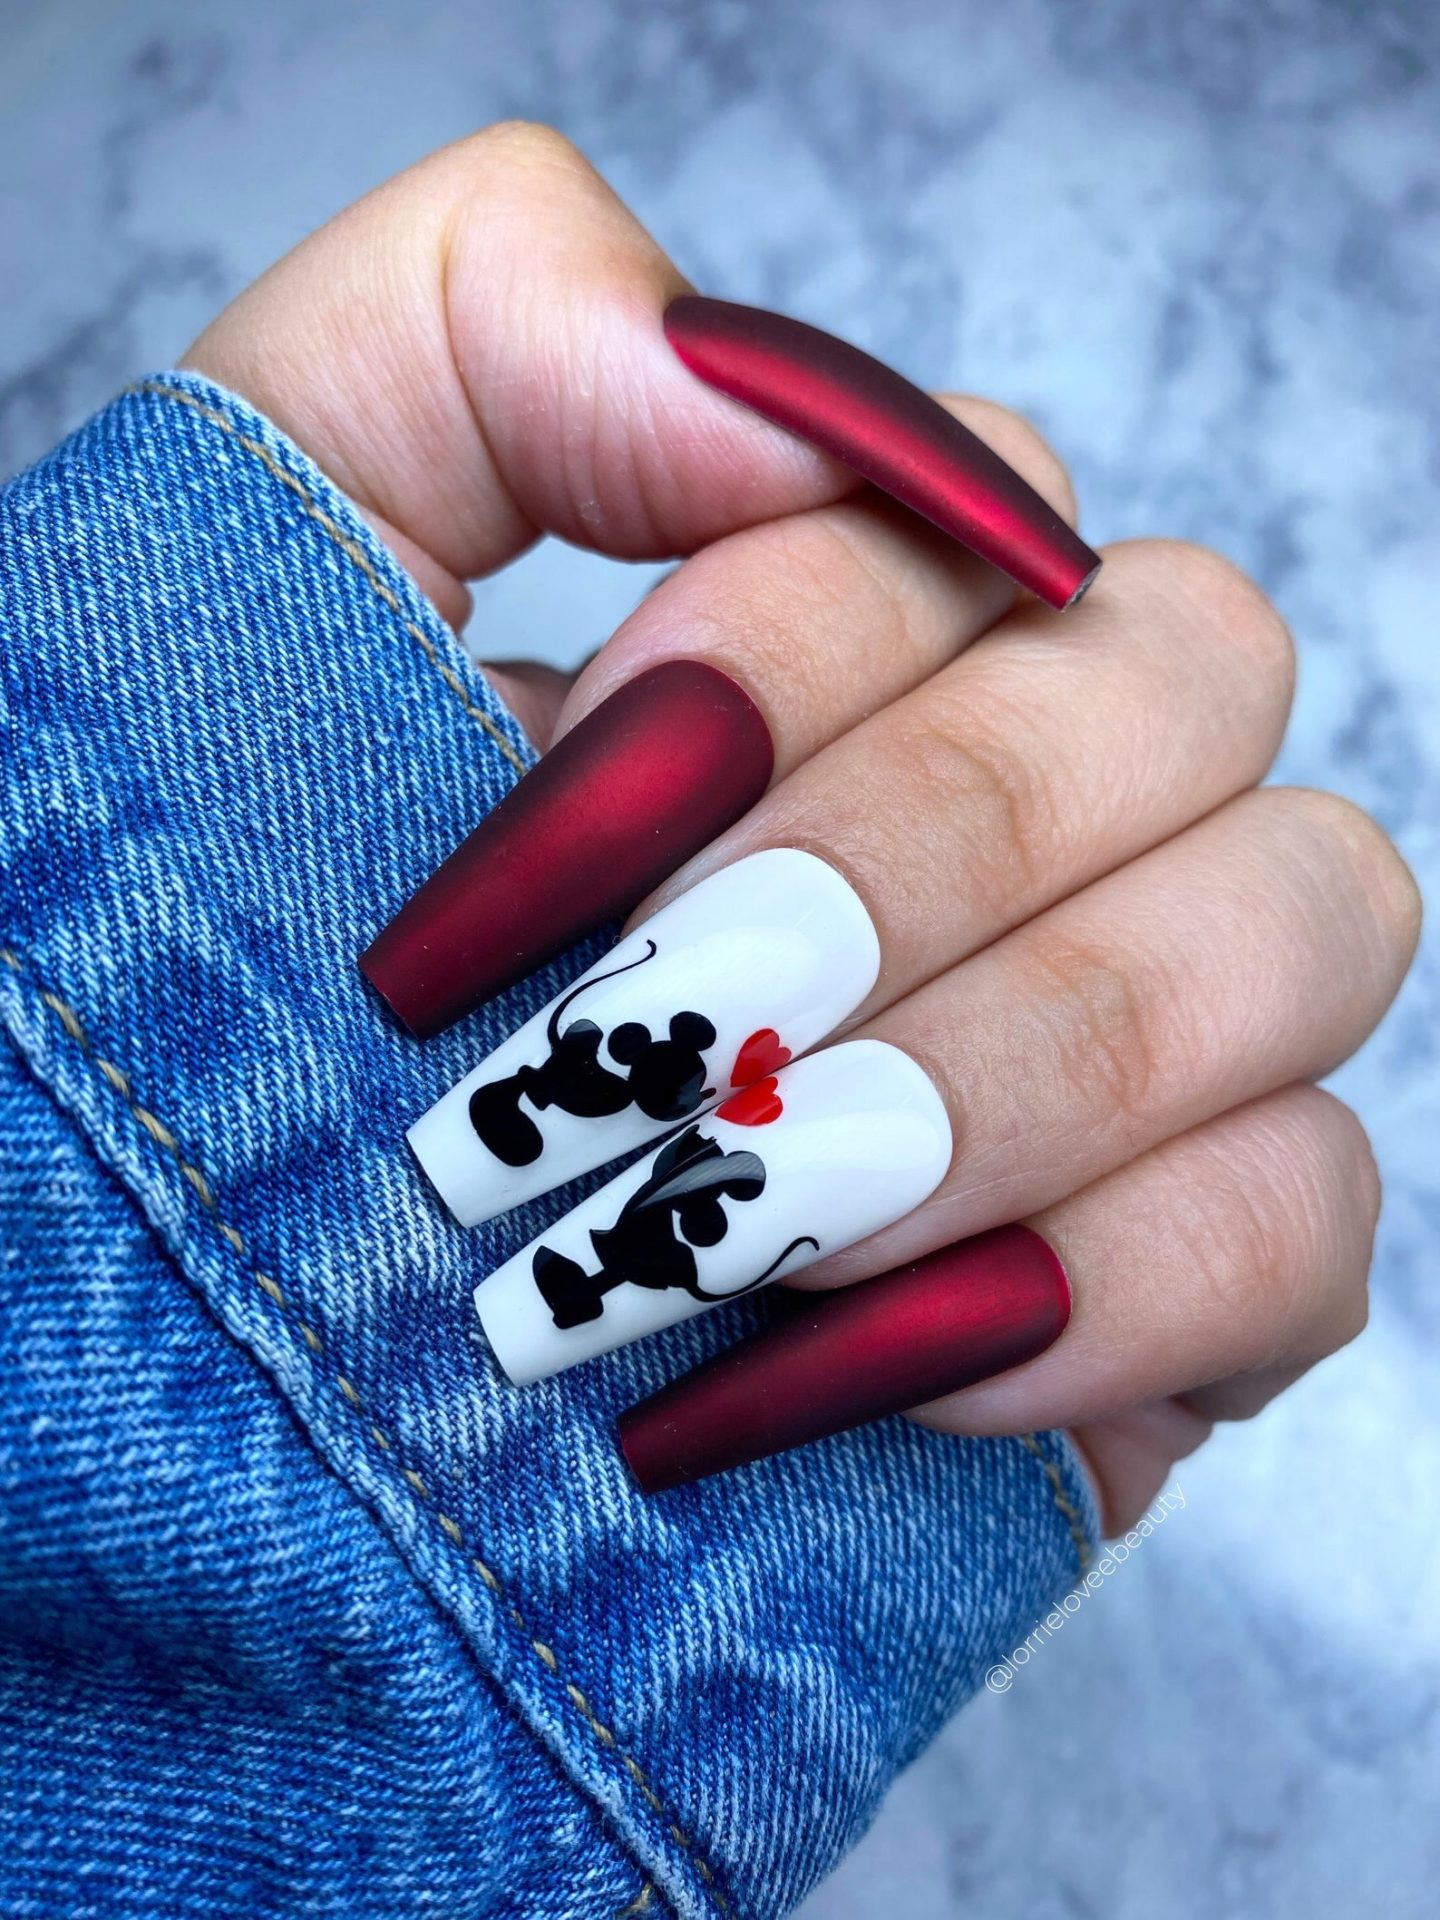 White and metallic red Disney nails with Minnie and Mickey mouse nail art